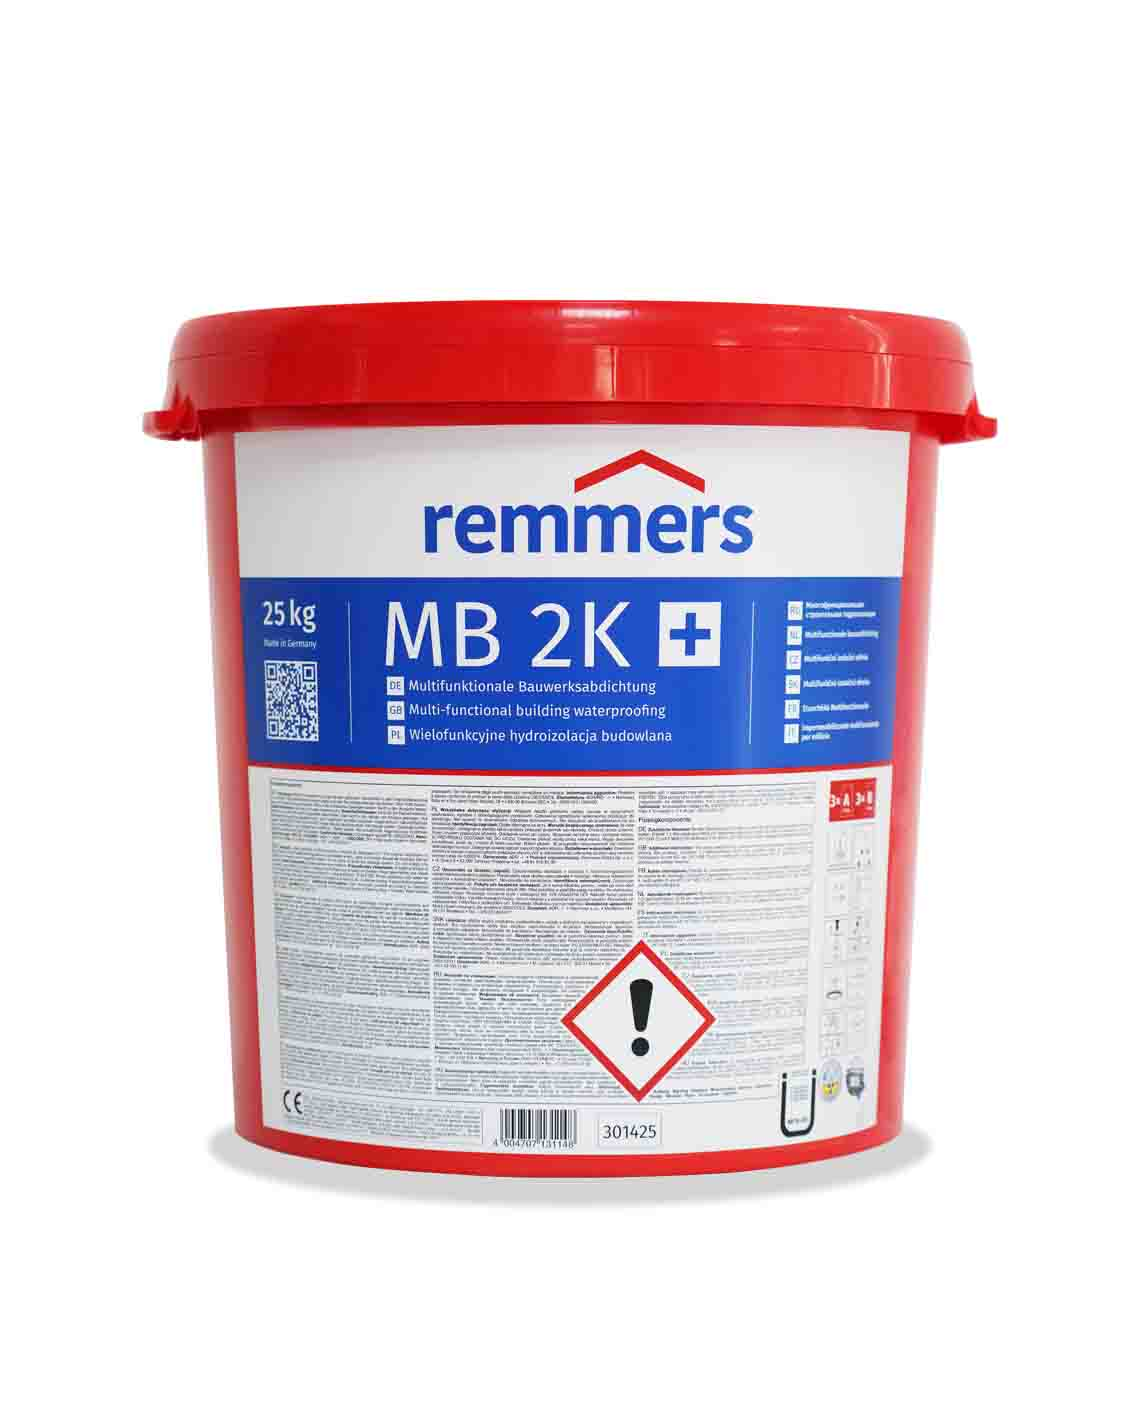 remmers-MB 2K